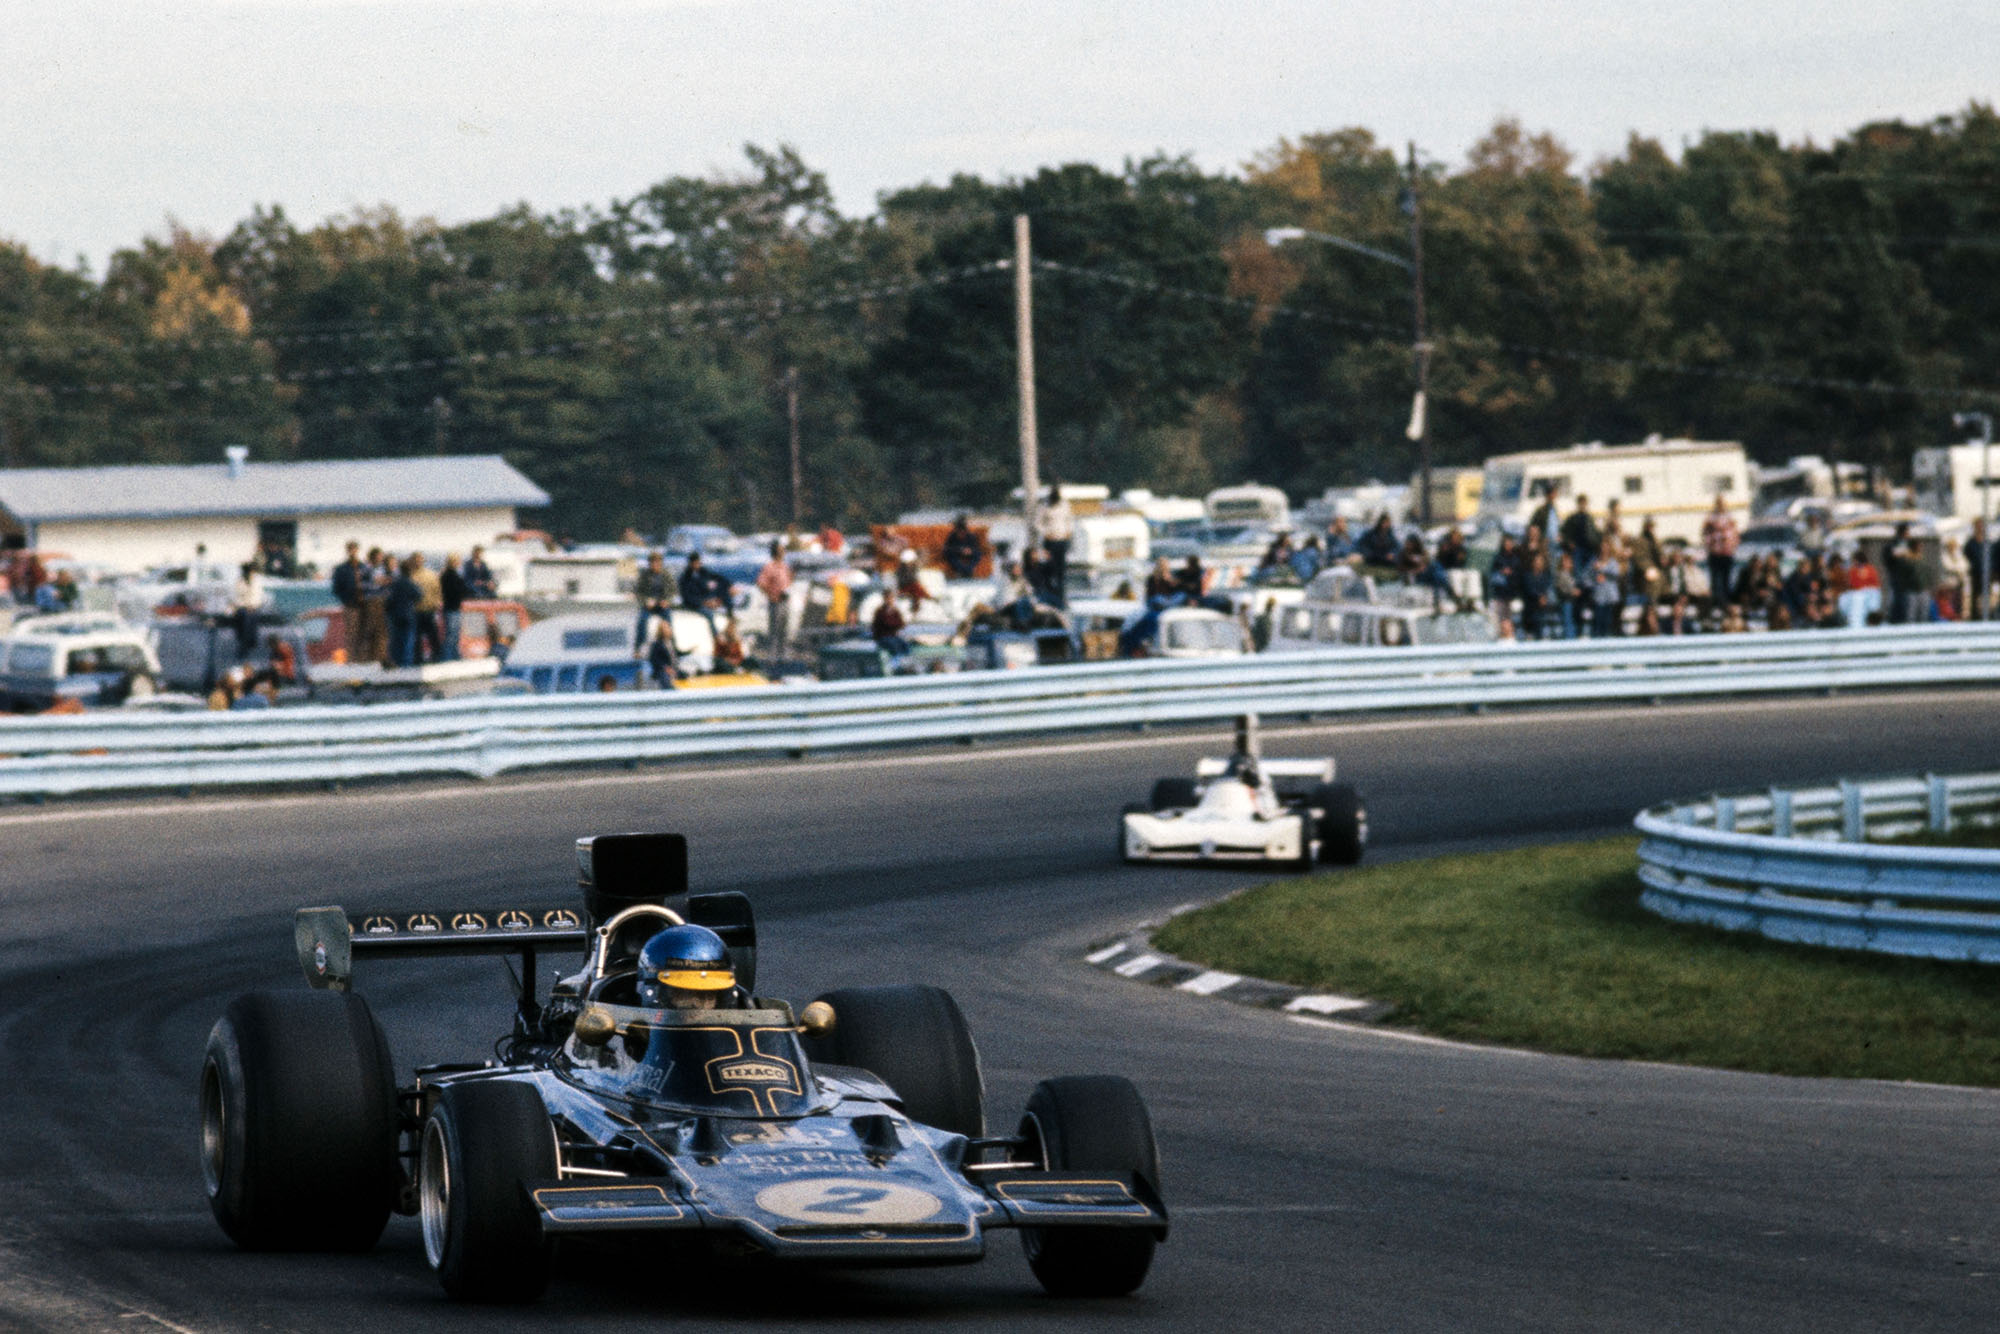 Ronnie Peterson (Lotus) leads James Hunt (Hesketh) at the 1973 United States Grand Prix, Watkins Glen.